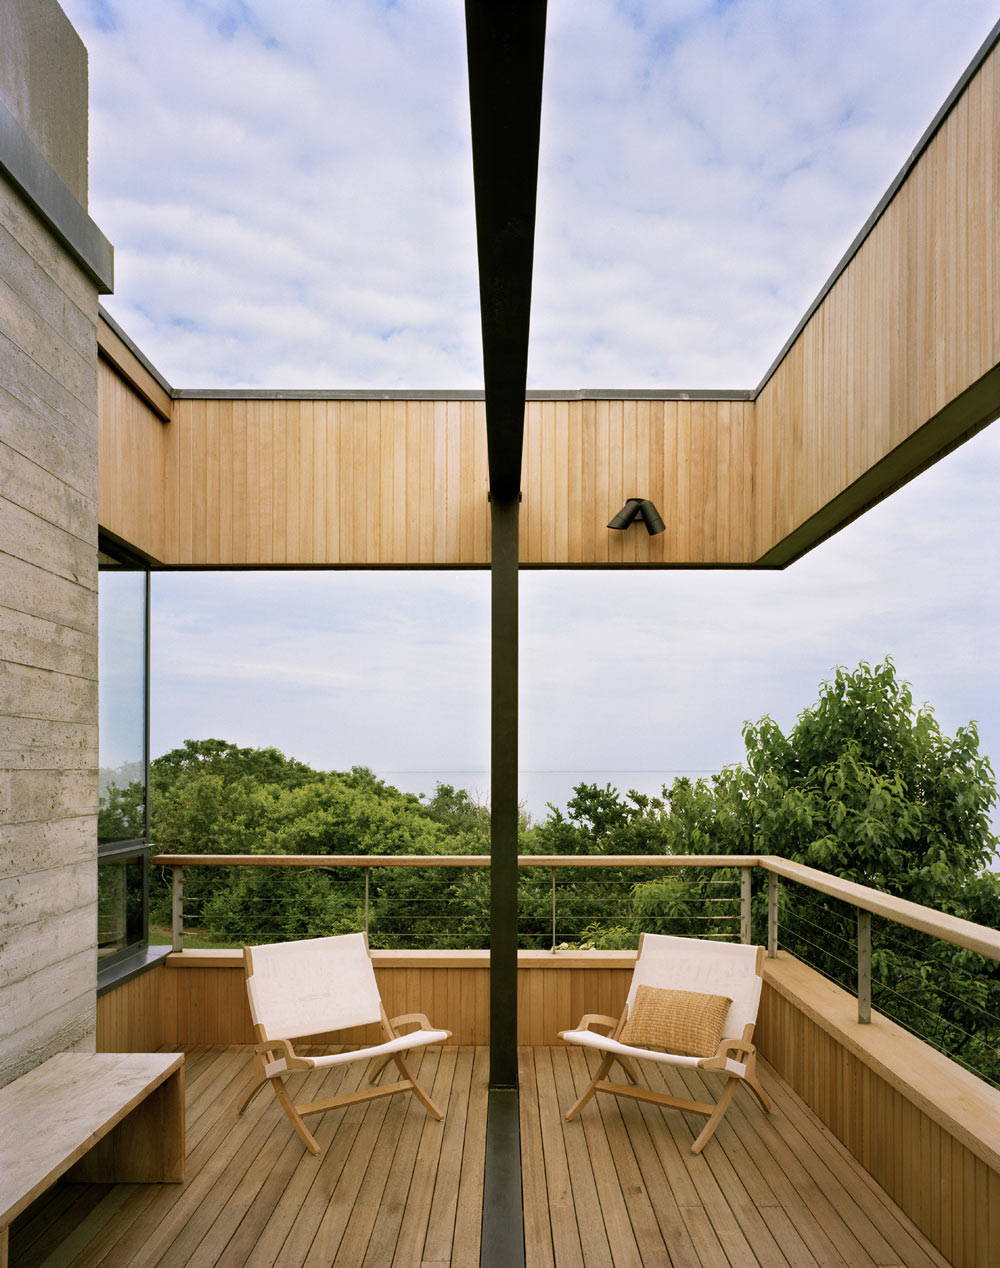 Balcony, Bluff House in Montauk, New York by Robert Young